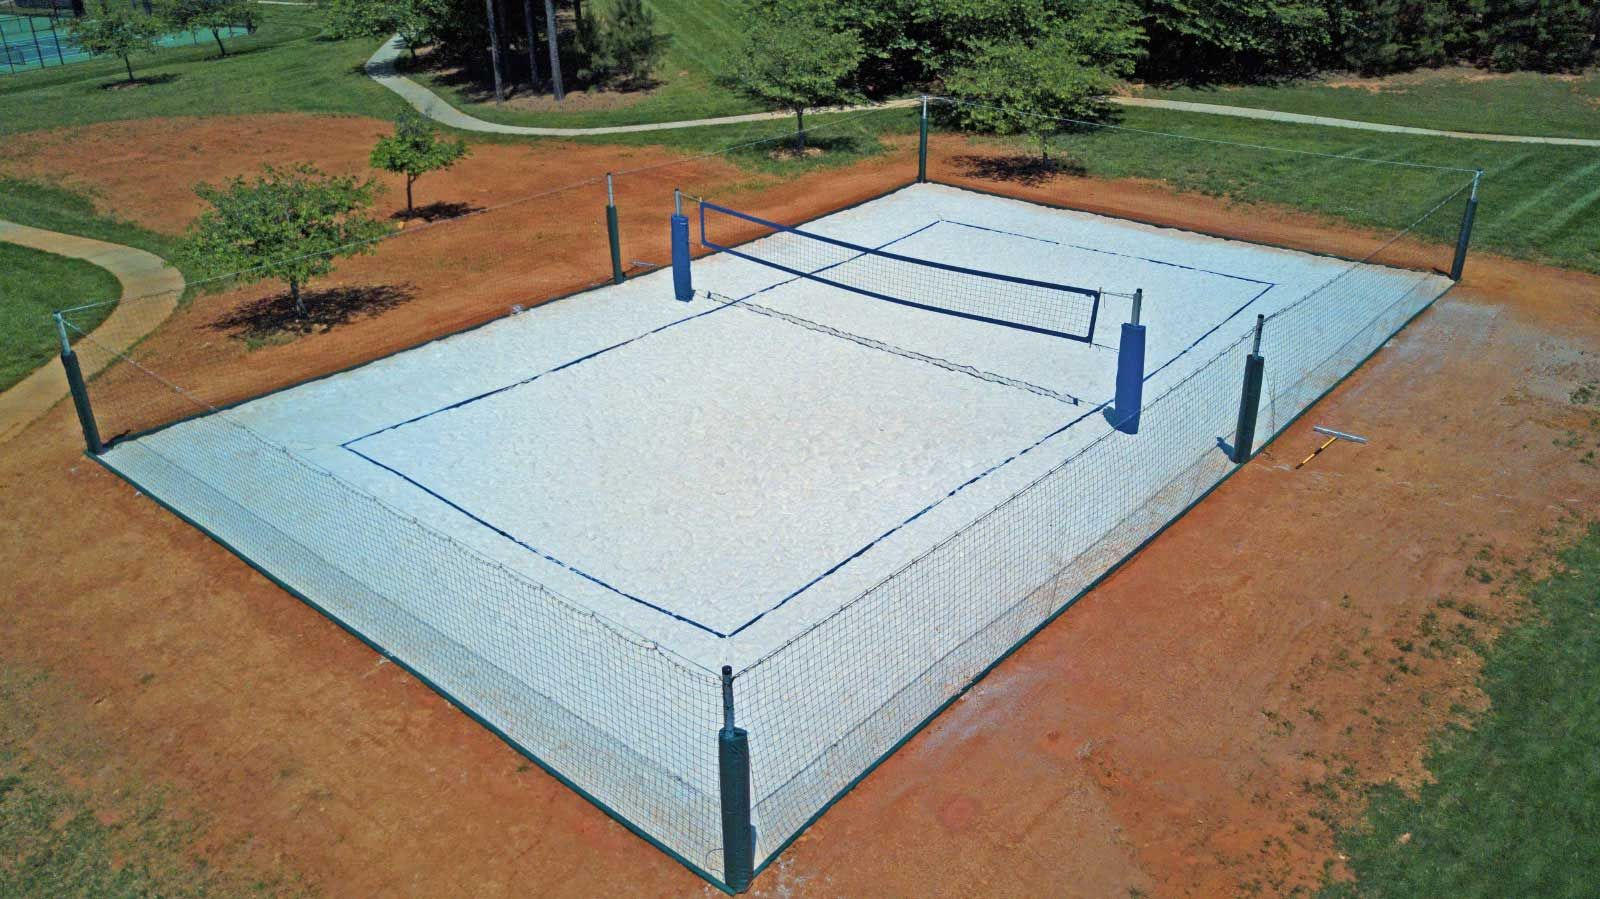 Backyard Volleyball Courts In 2020 Beach Volleyball Court Volleyball Court Backyard Beach Volleyball Court Dimensions